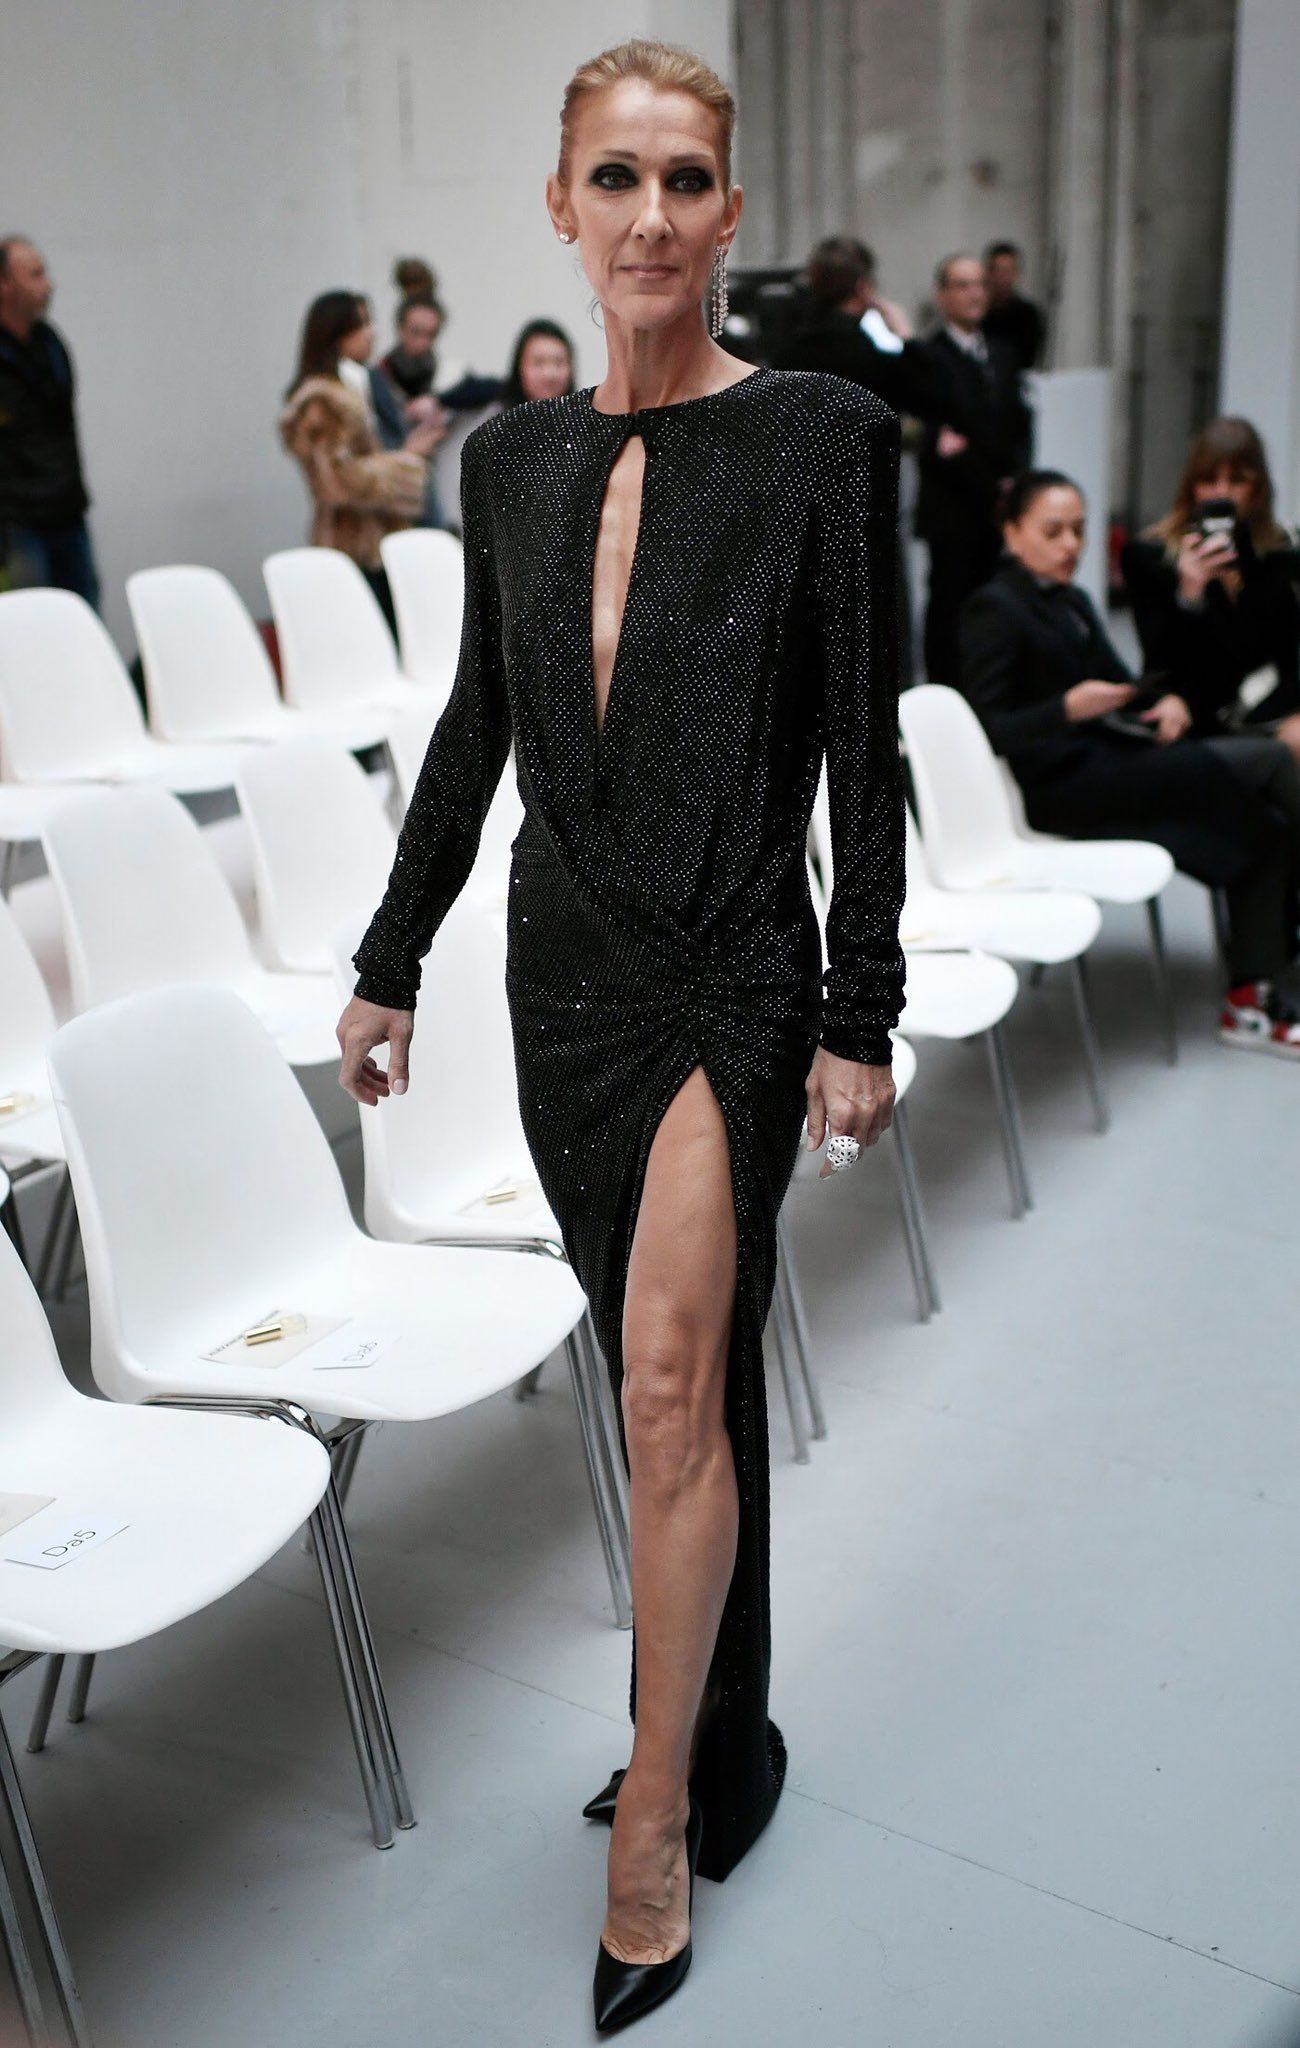 50% off great deals 2017 for whole family Céline Dion in Alexandre Vauthier #celinedion ...